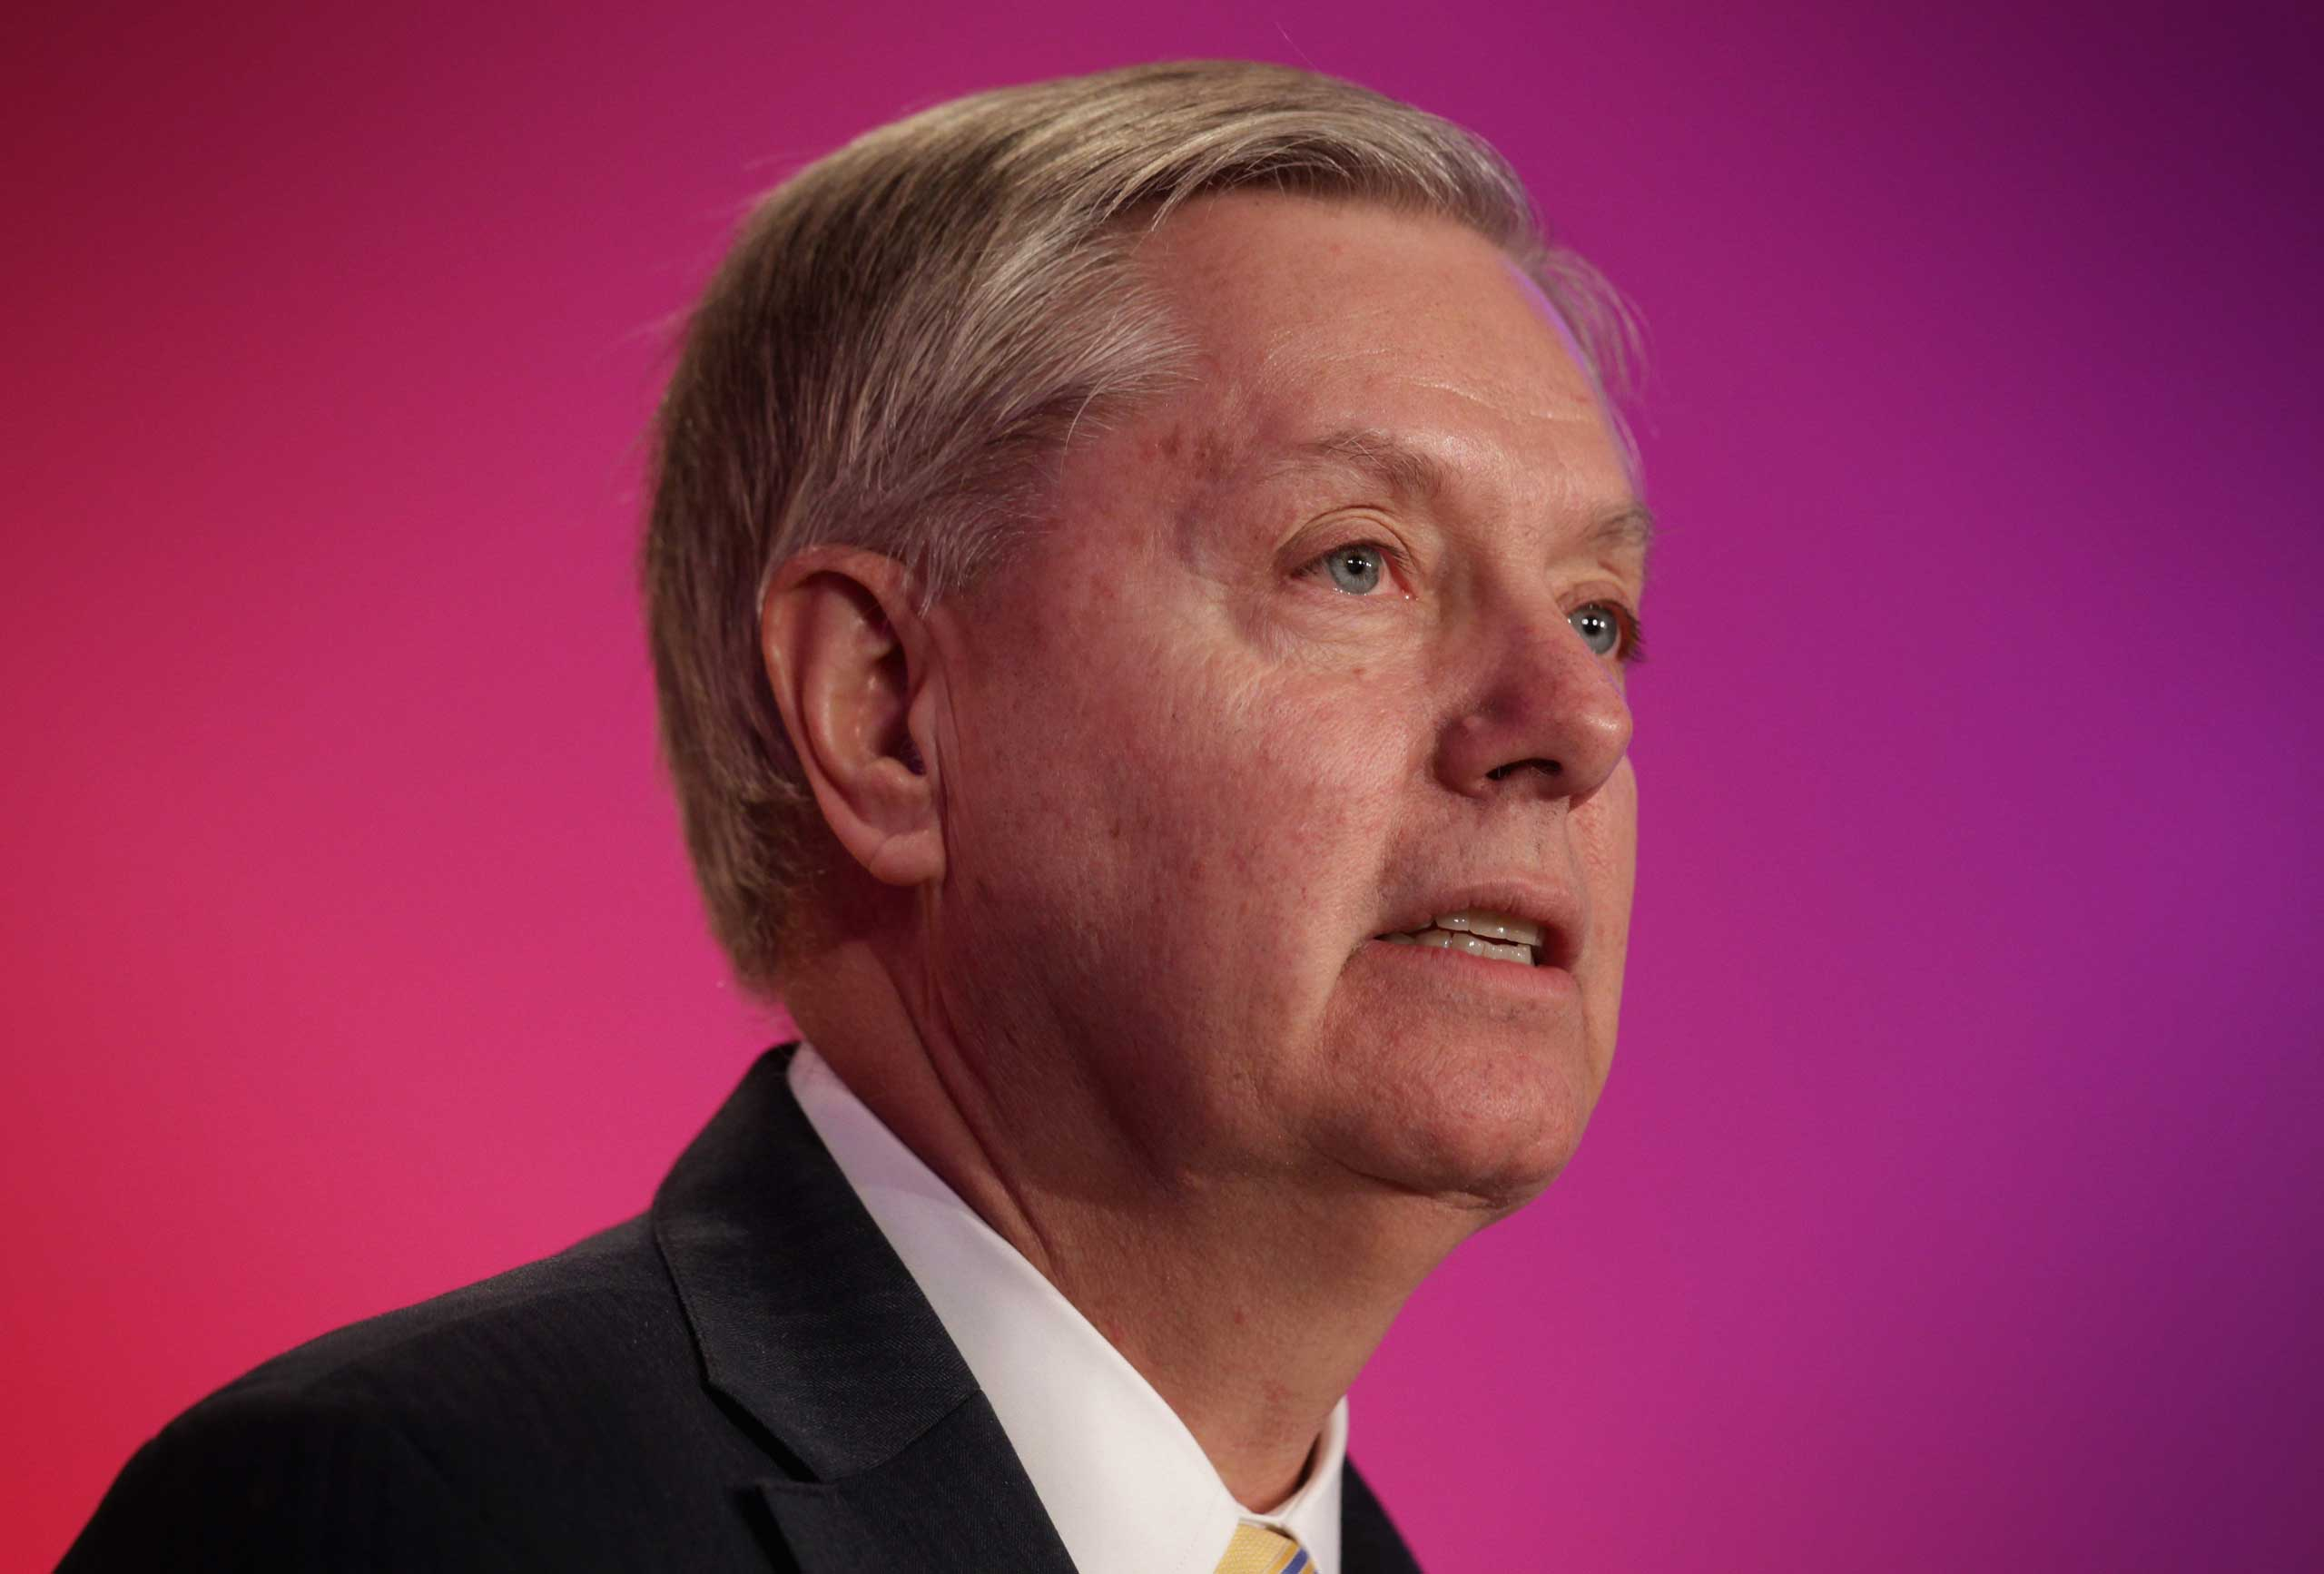 <b>Lindsey Graham</b> Lindsey Graham announced his plans to join the 2016 presidential race.